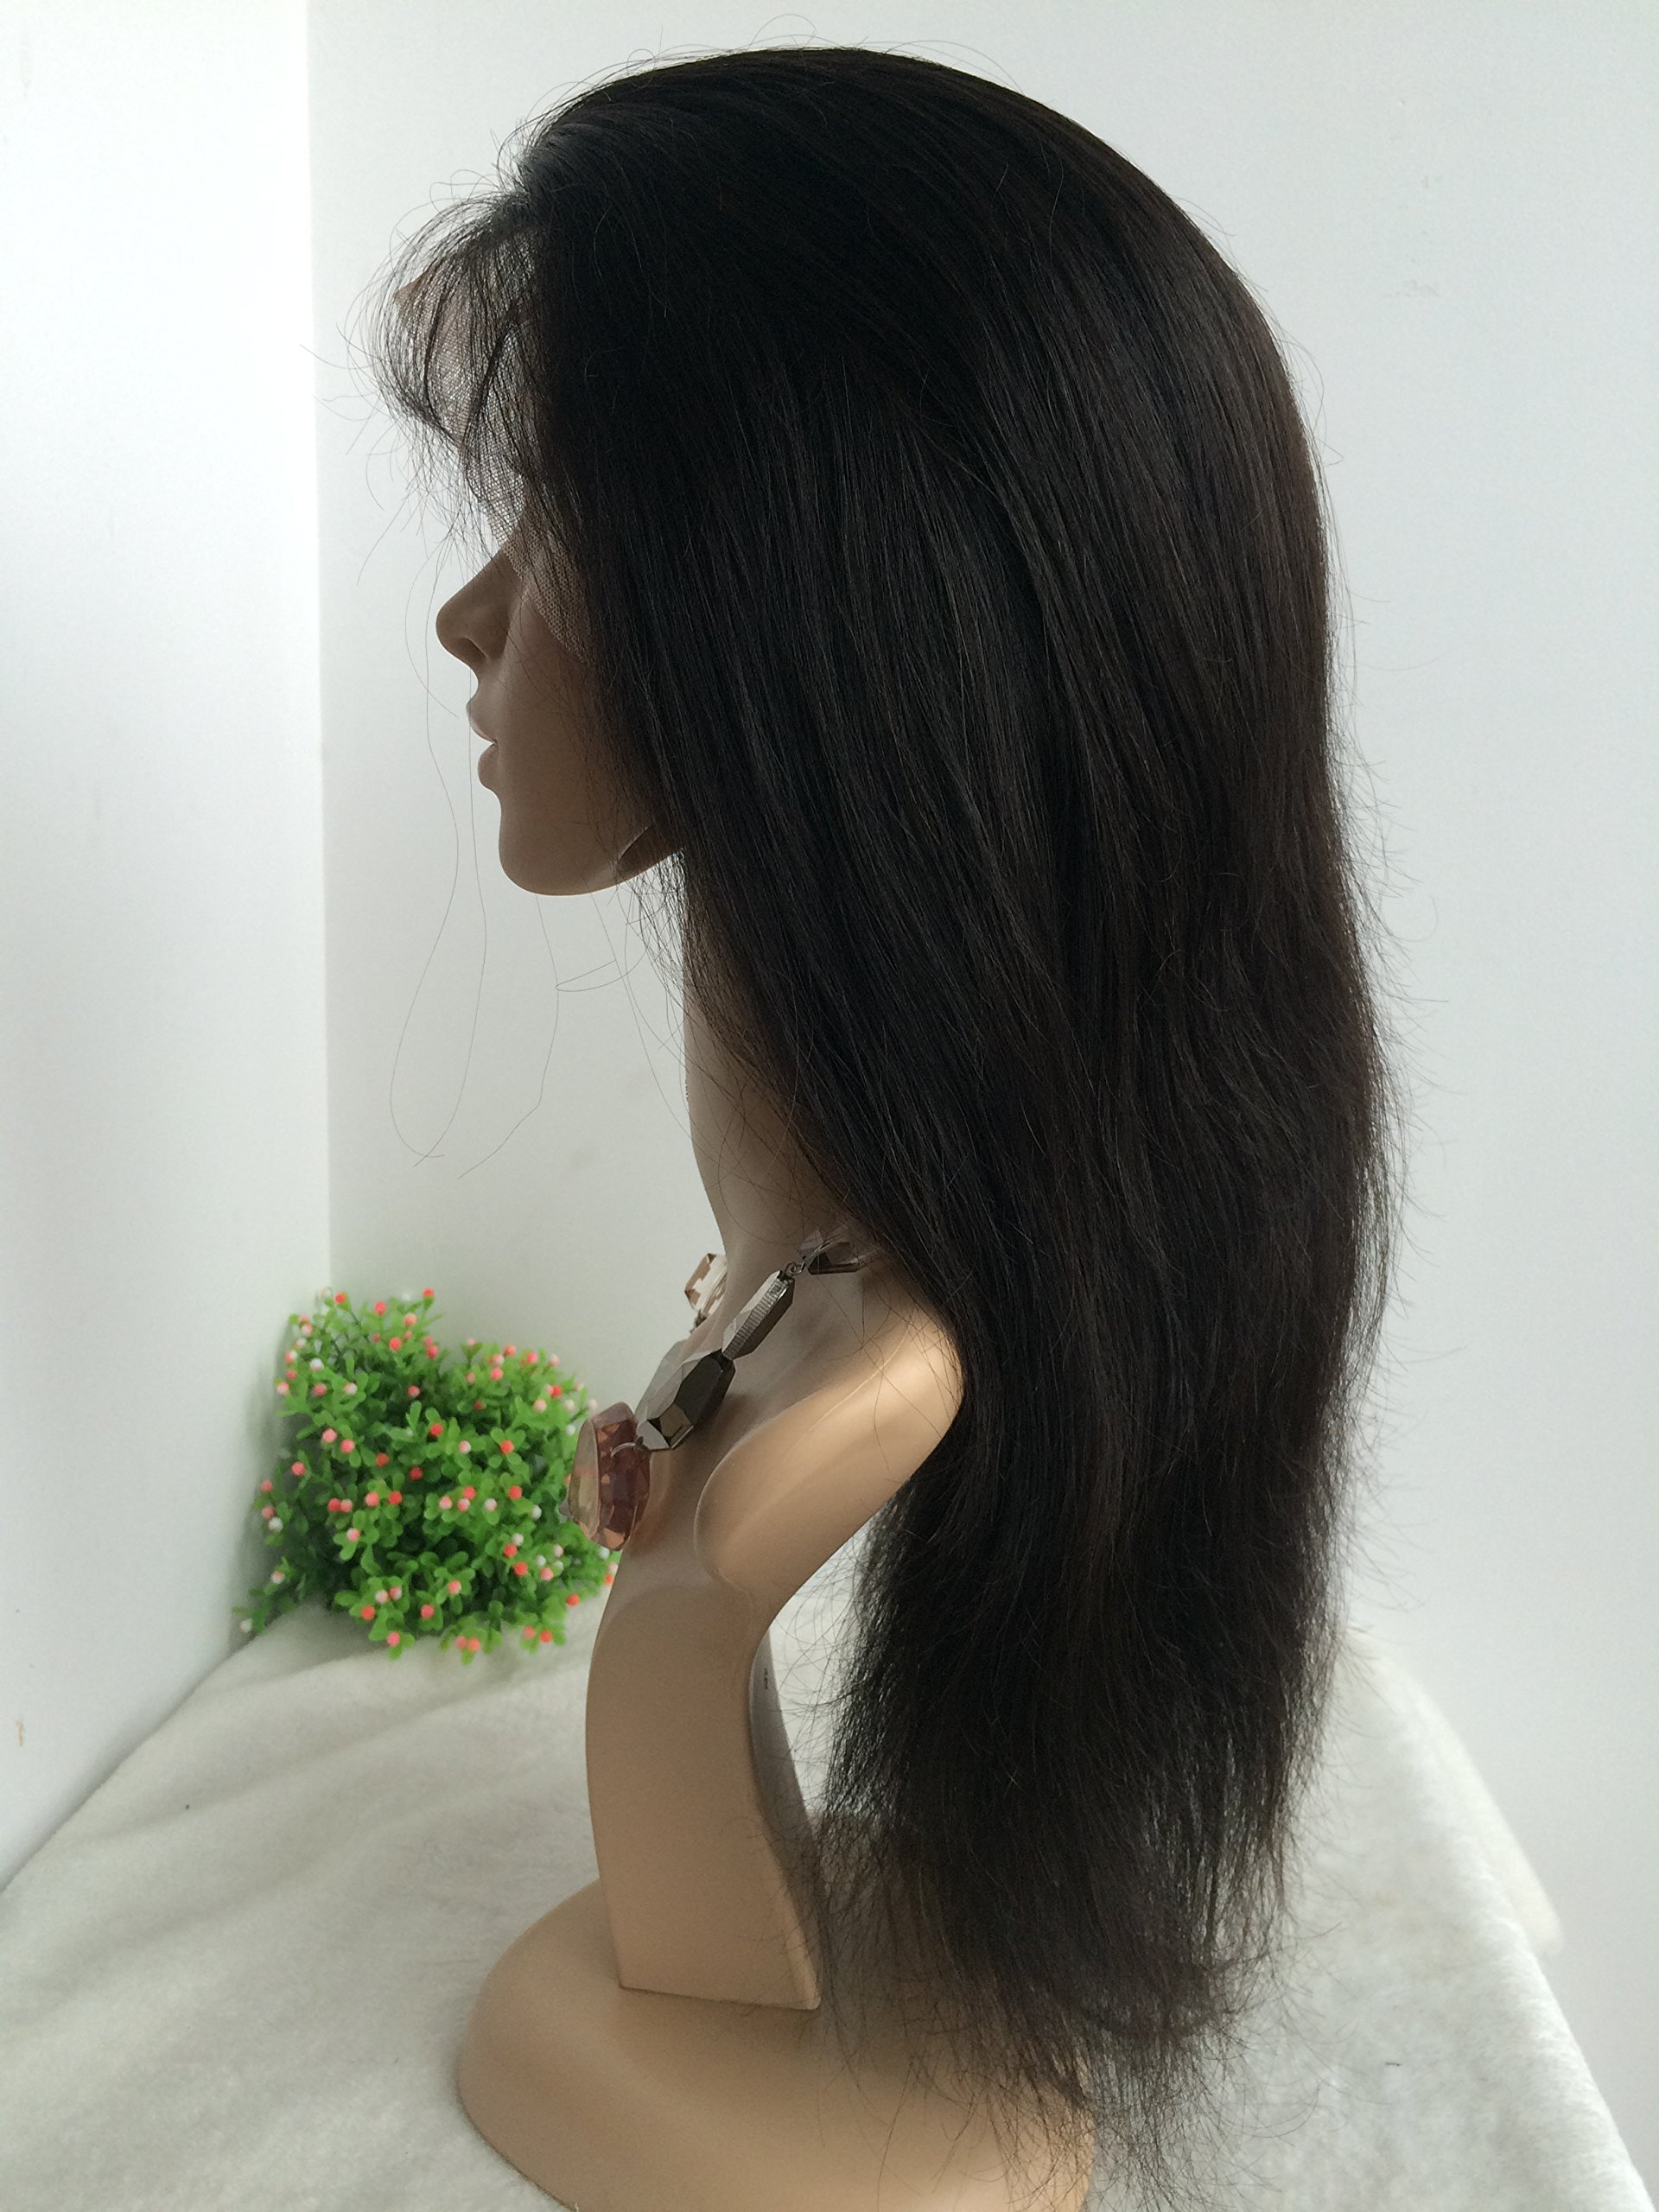 16 INCH,NATURAL COLOR,CHINESE VIRGIN SILK STRAIGHT FULL LACE SILK TOP WIG by April silk top wigs (Image #1)